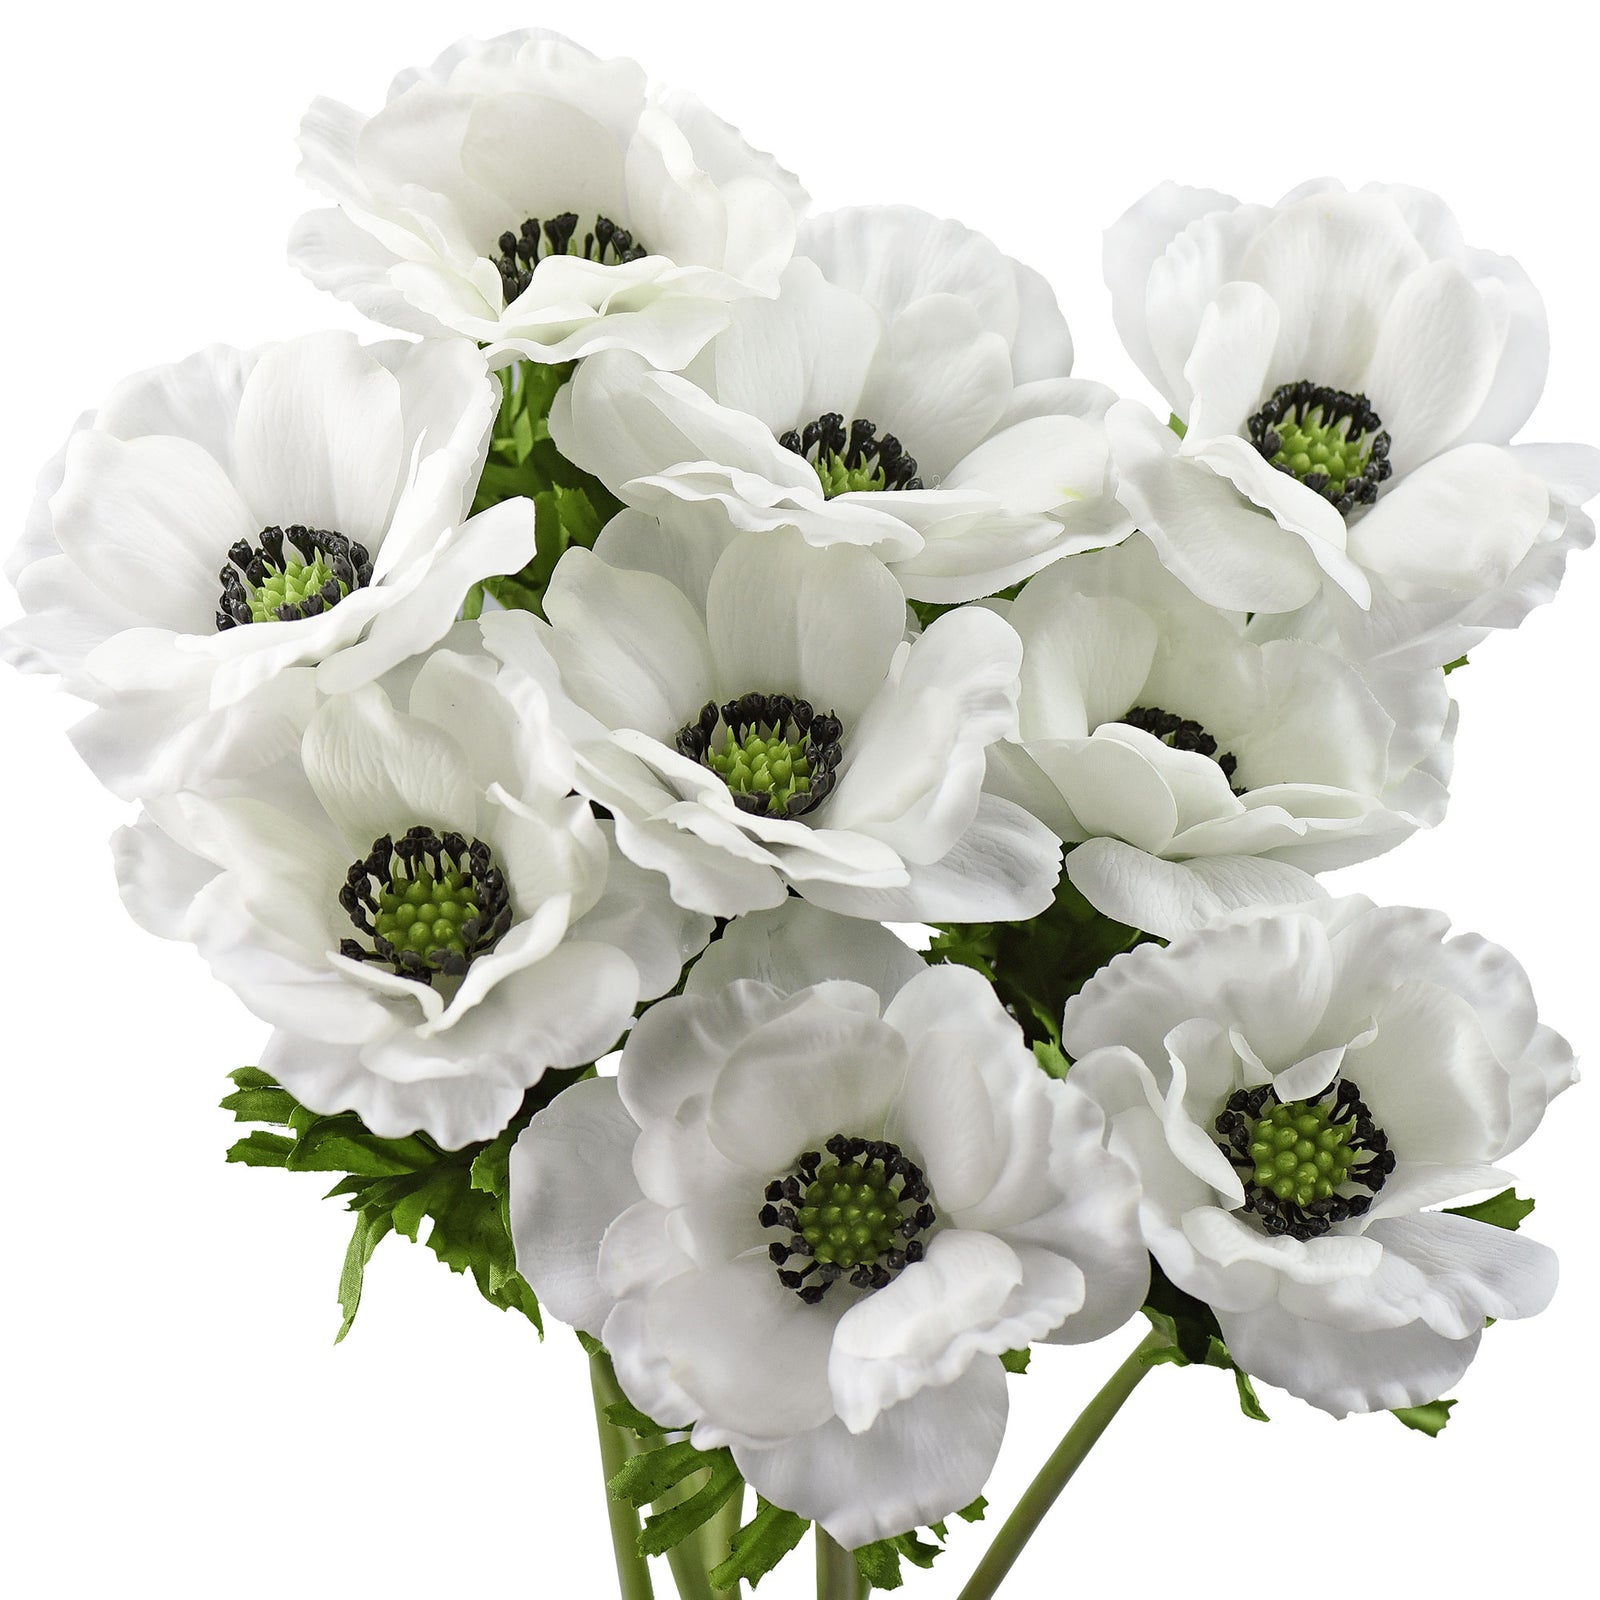 9 Long Stems of 'Real Touch' (White) Artificial Anemone Silk Flowers with Leaves 48cm (18.9 inches)